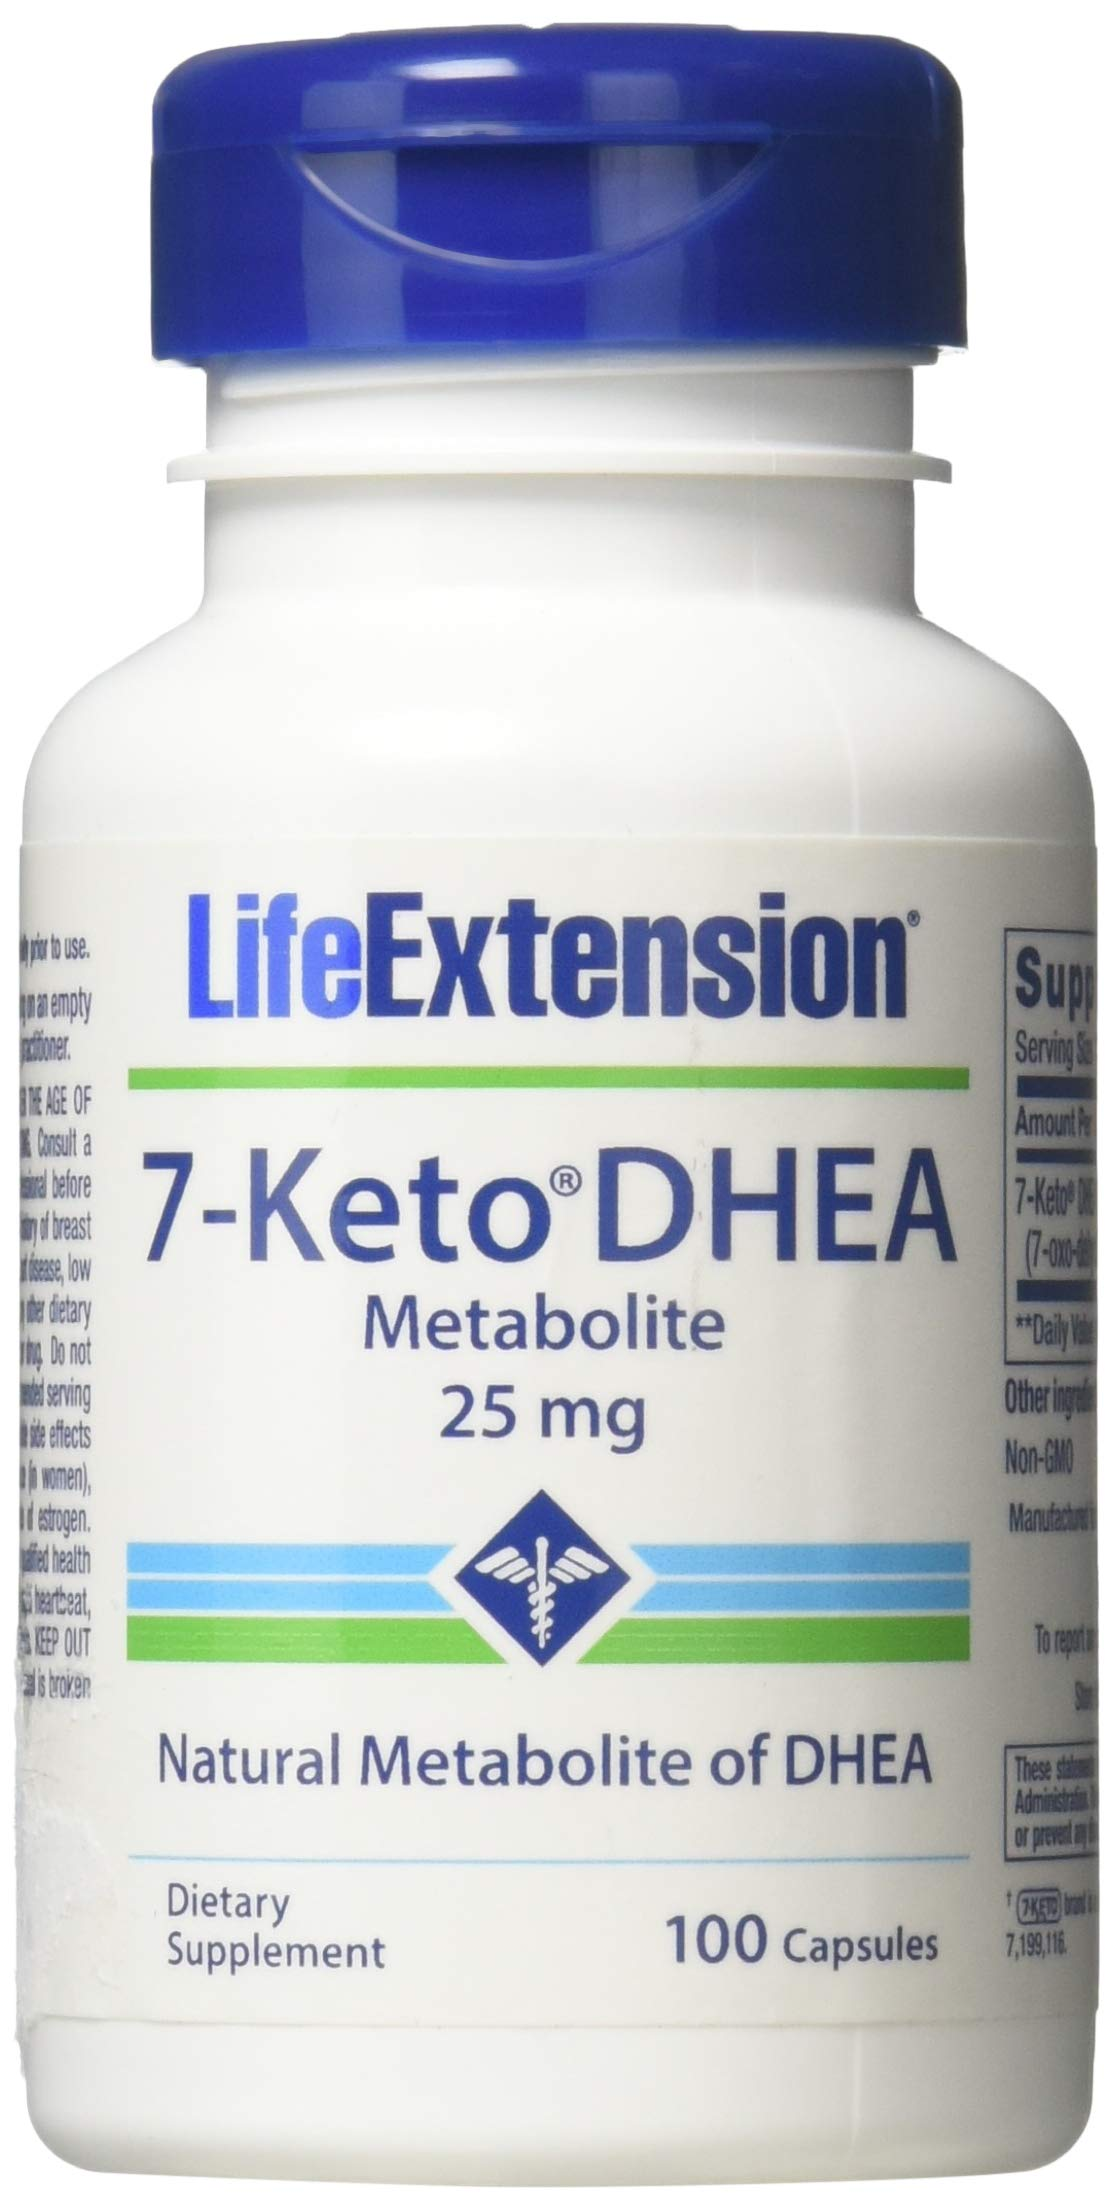 Life Extension - 7-Keto DHEA Metabolite 25 mg 100 caps (Pack of 2)